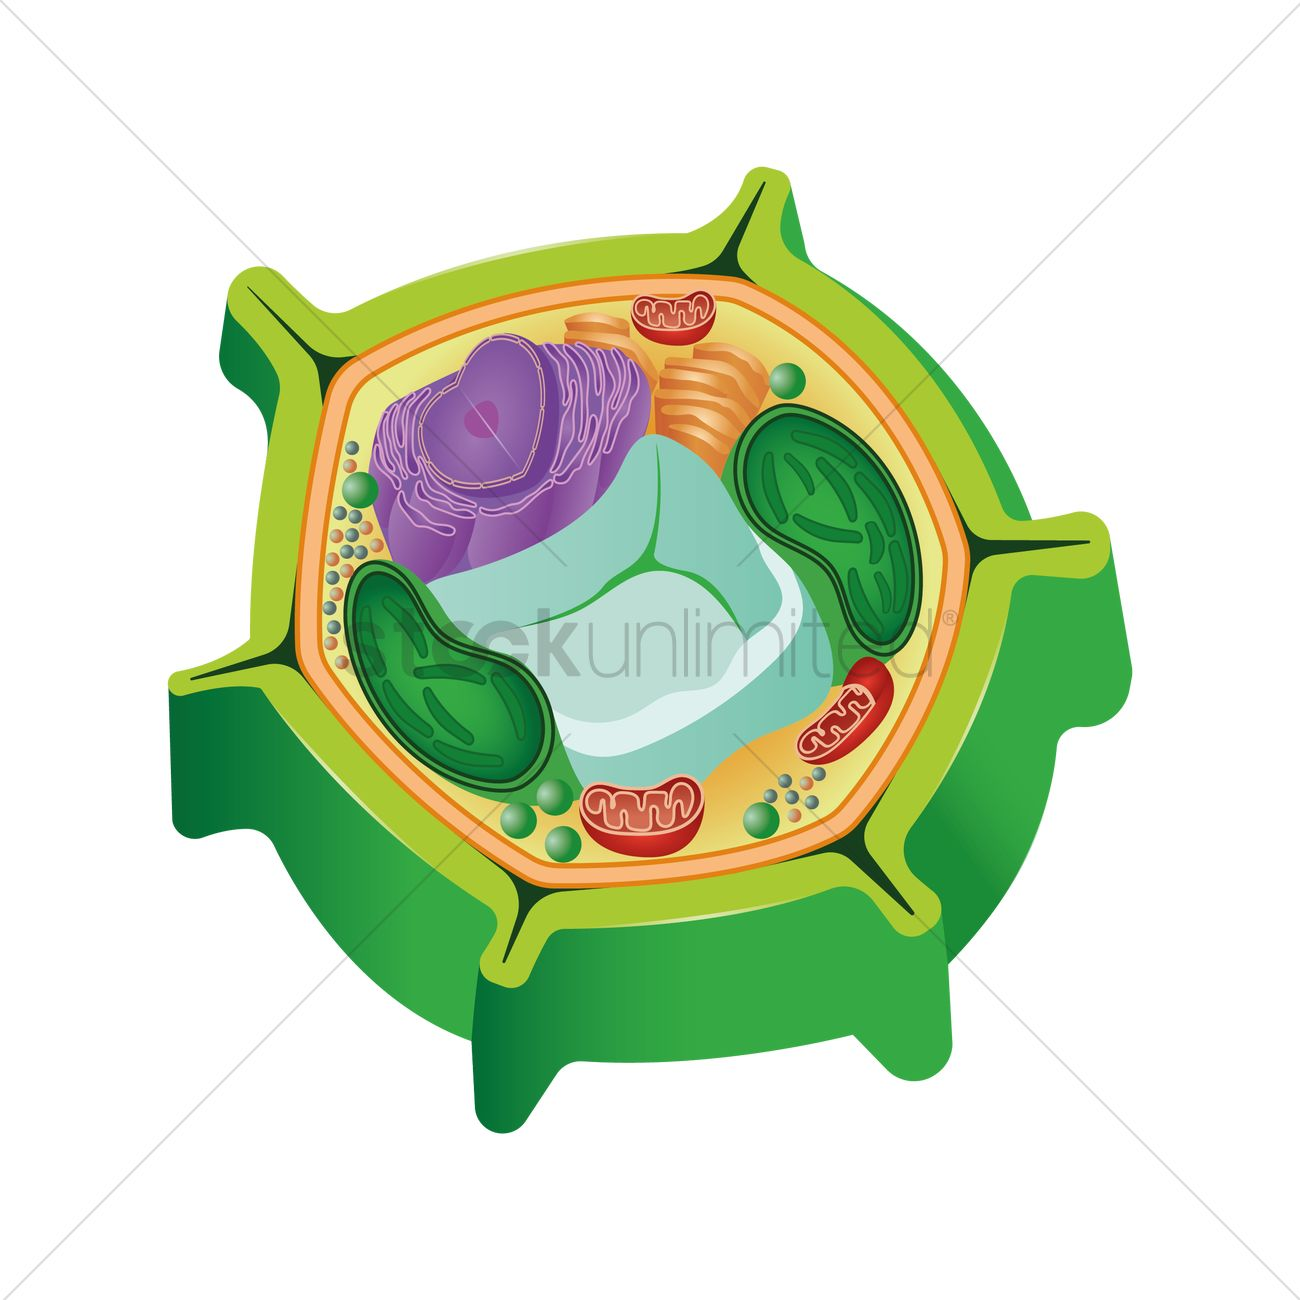 Anatomy of a plant cell Vector Image - 1870108 | StockUnlimited